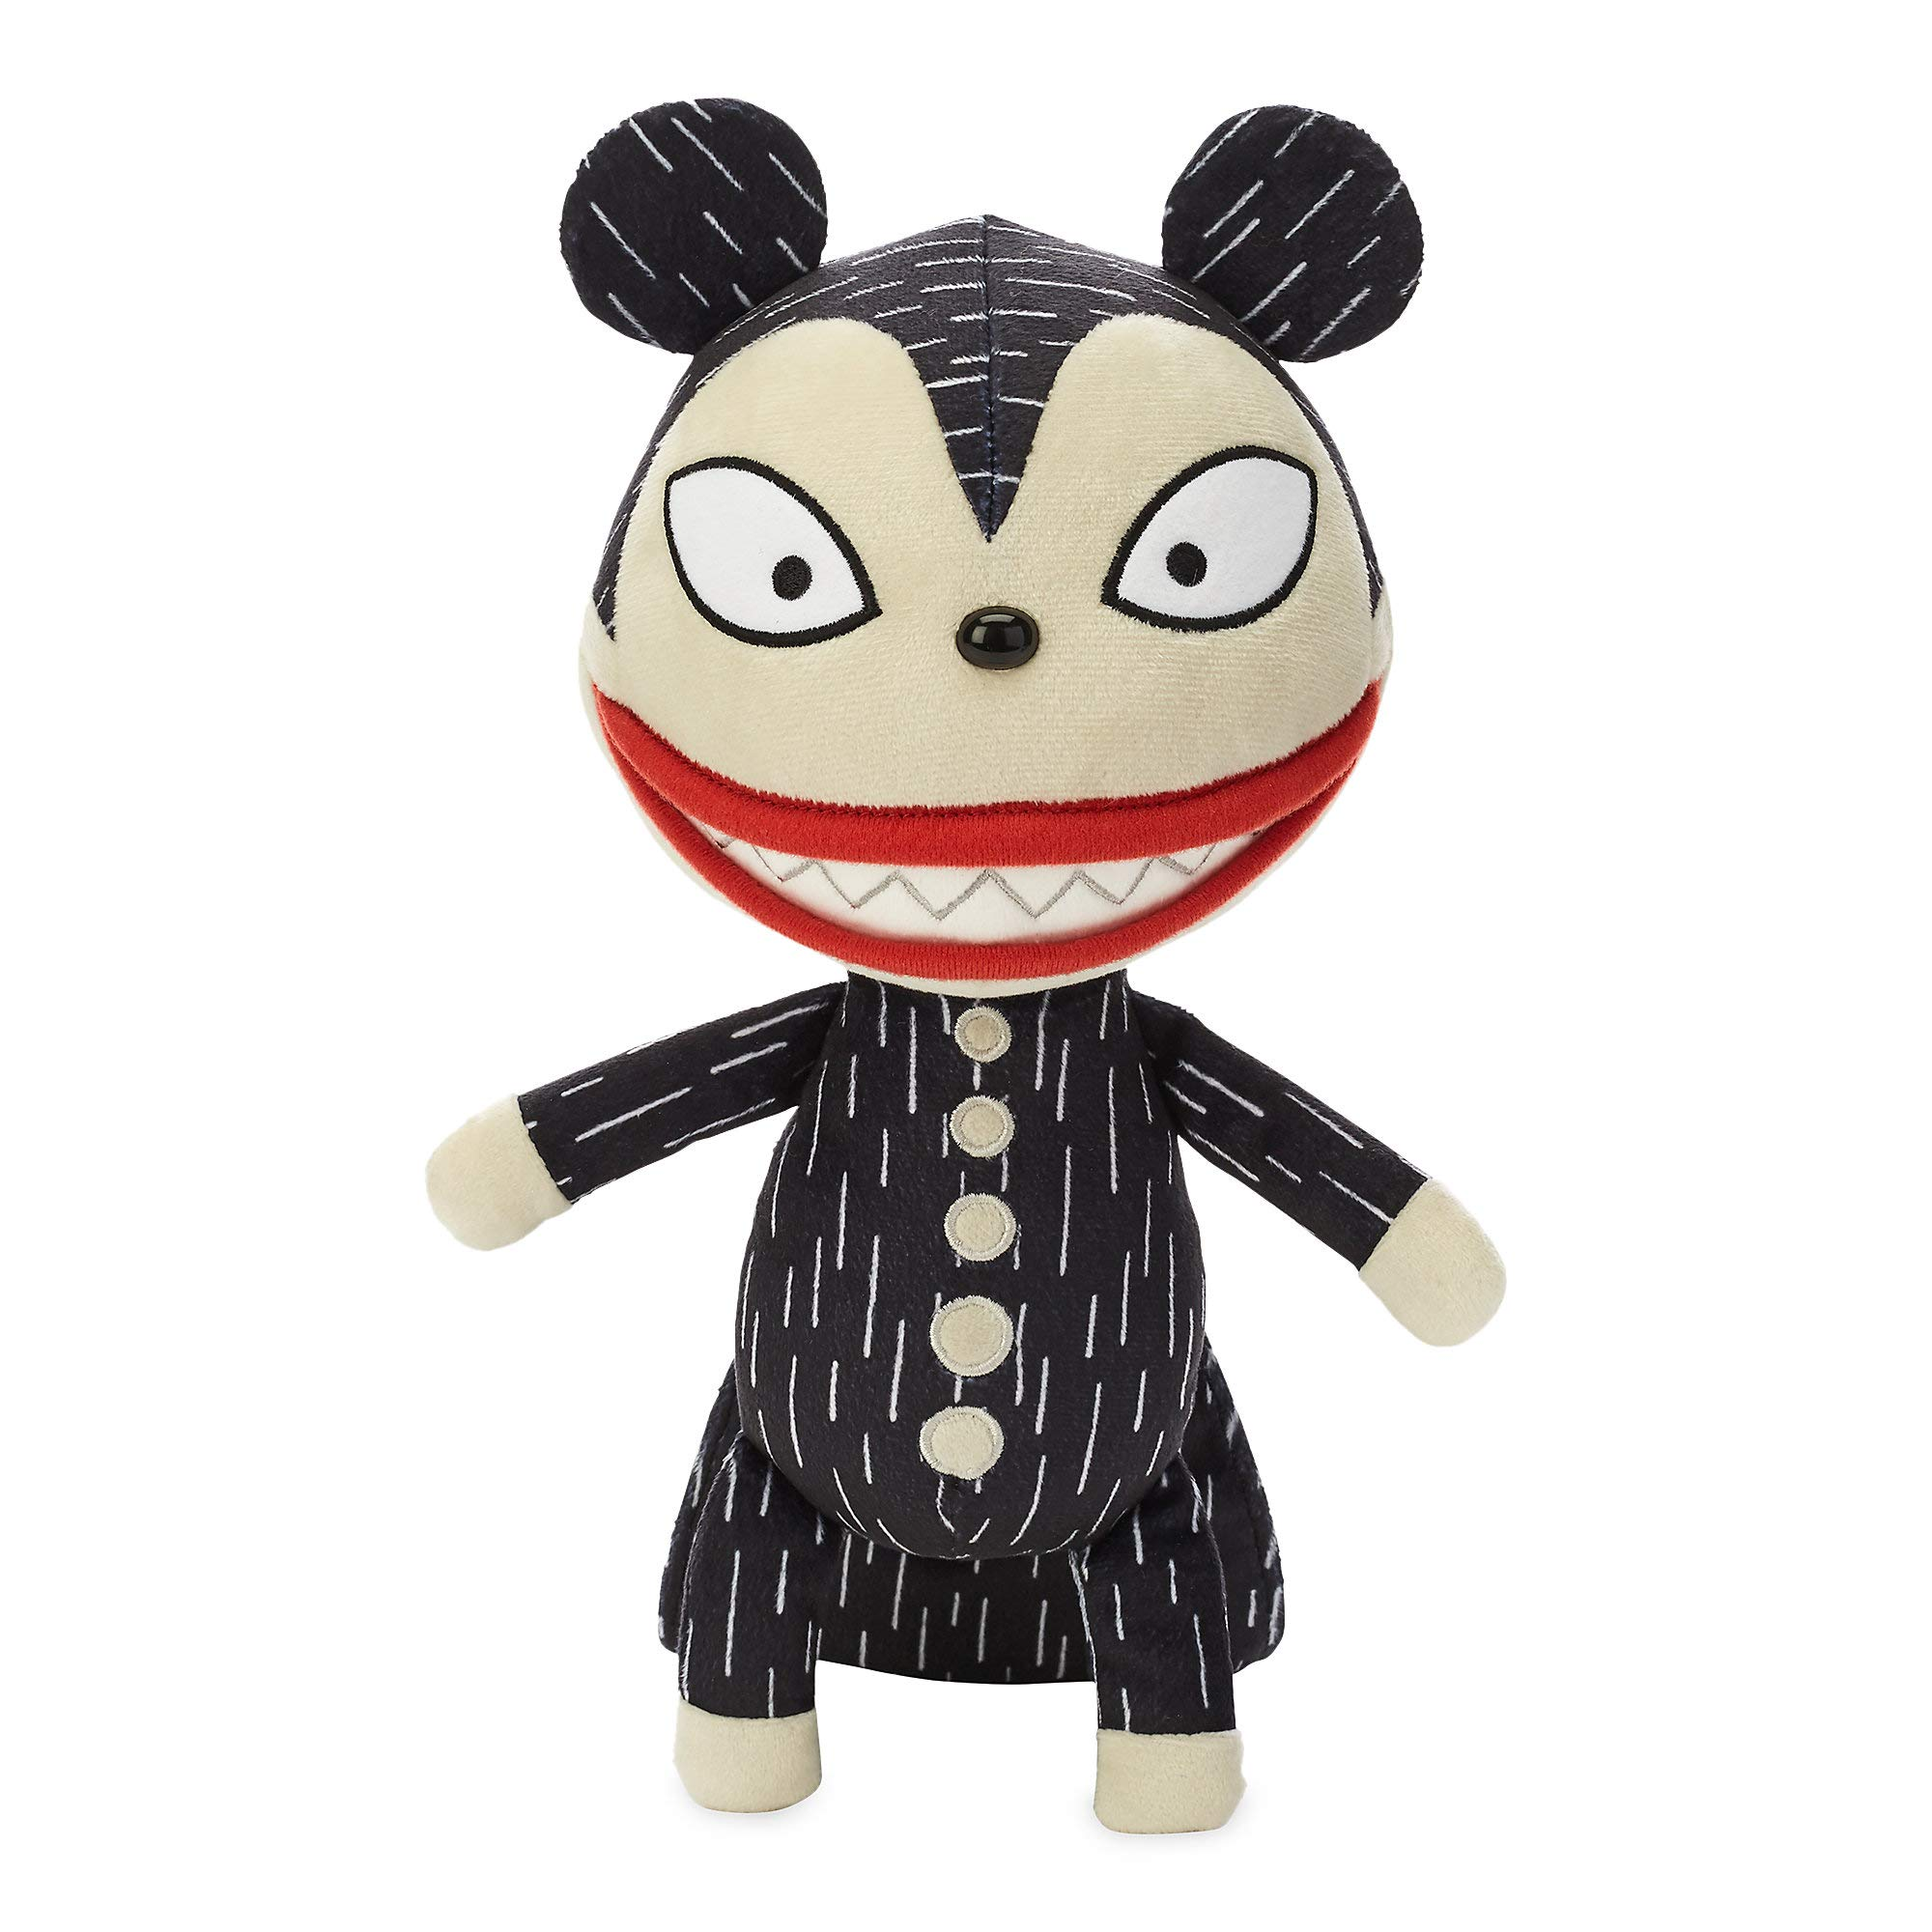 Inspirar los Tiza  Disney Vampire Teddy Plush - Tim Burton'- Buy Online in Cayman Islands at  Desertcart